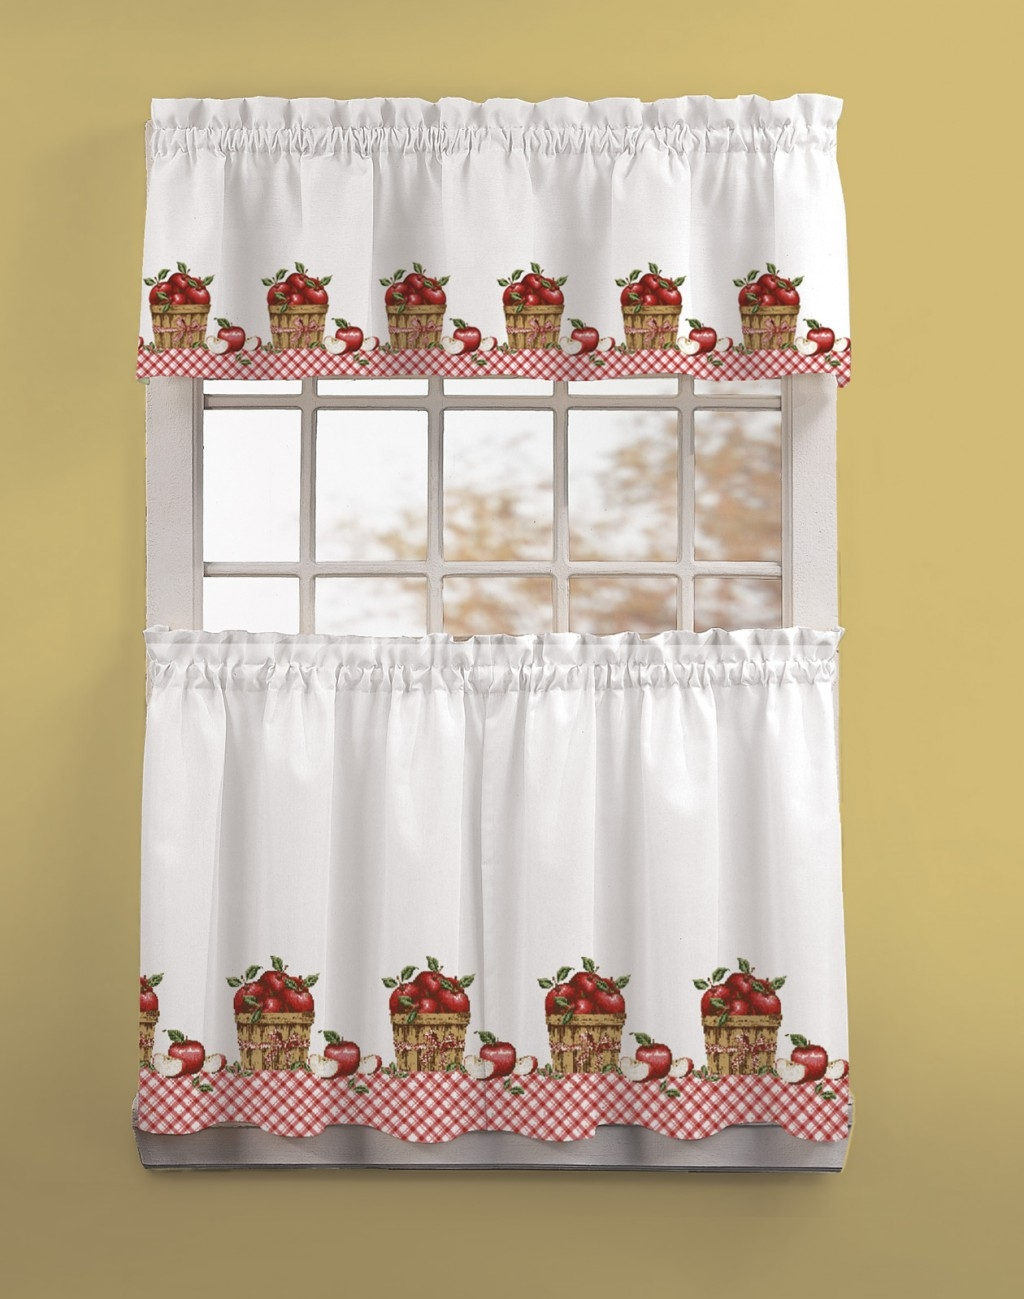 Colorful Kitchen Curtains Inspirations With Popular Cheap Images For Lace Curtain Sets (View 21 of 25)